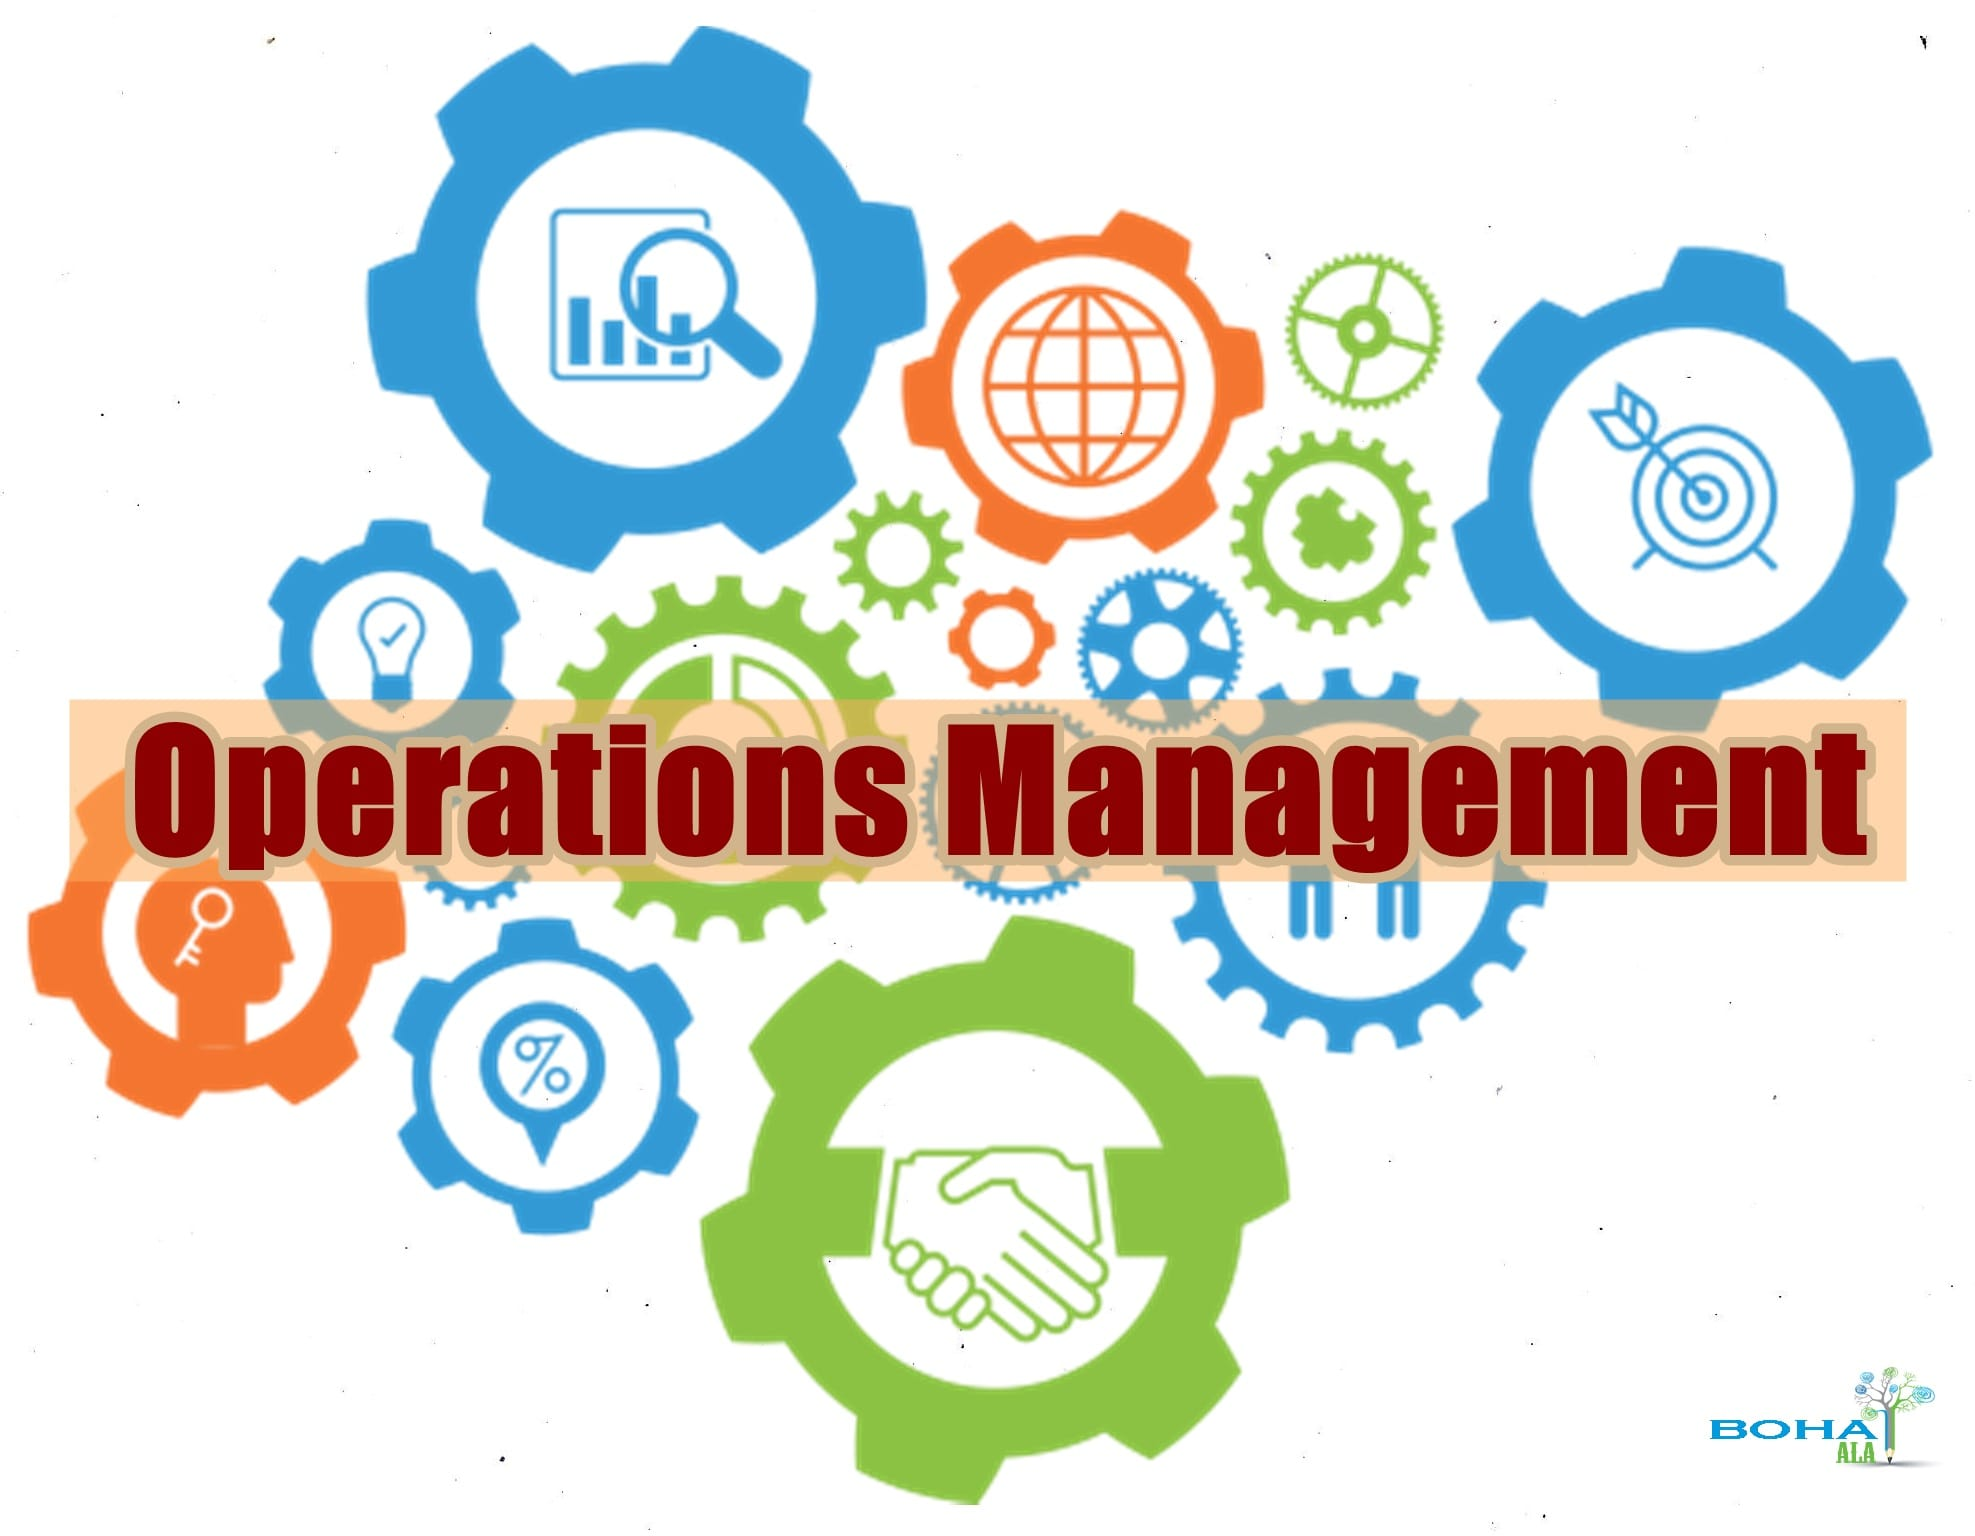 Essays on Operations Management